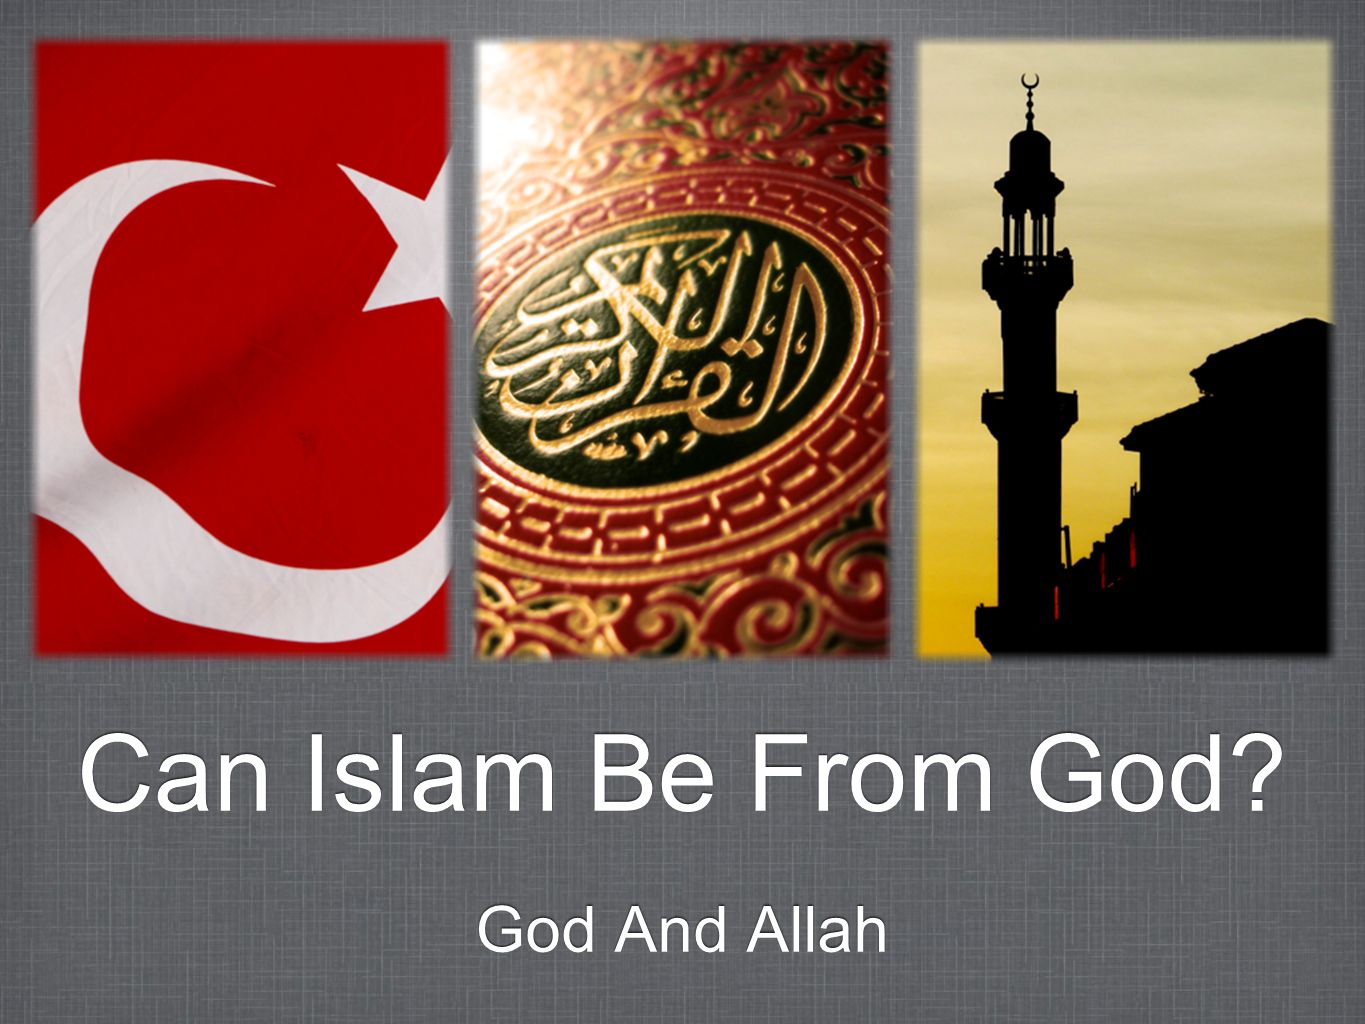 Can Islam Be From God? God And Allah